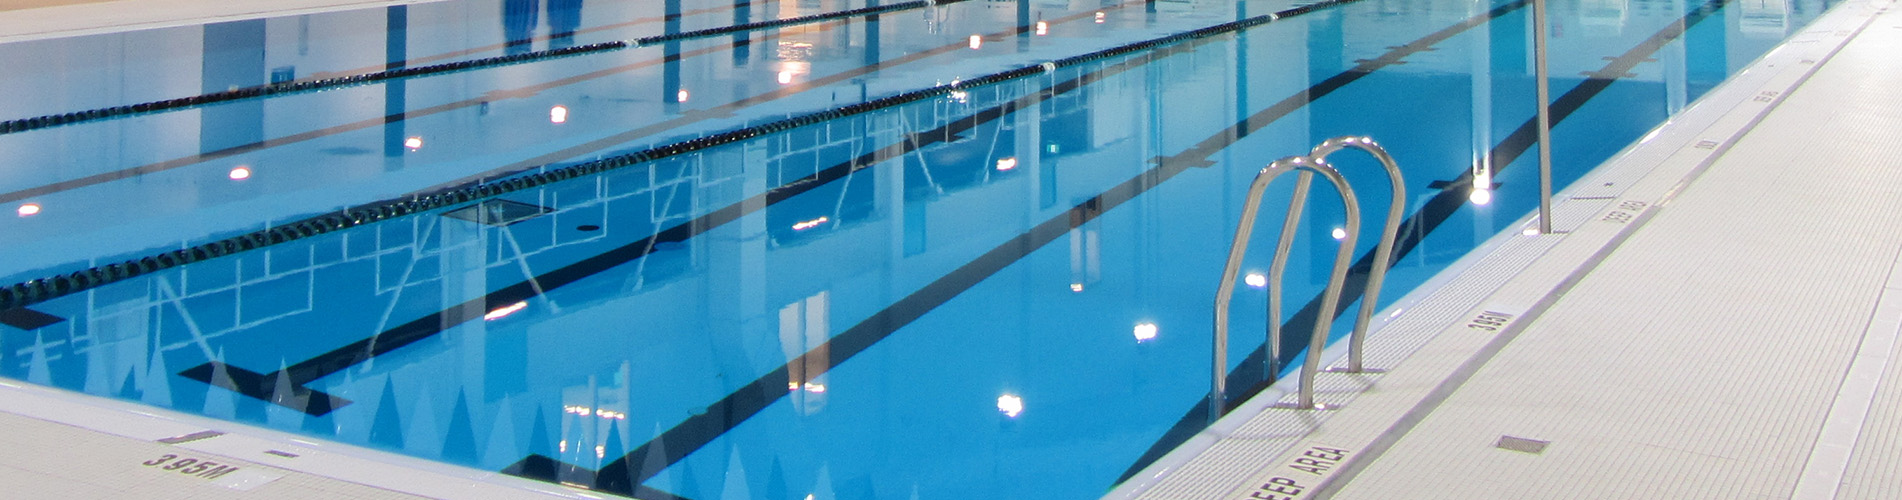 Public Pool Design and Construction Canada